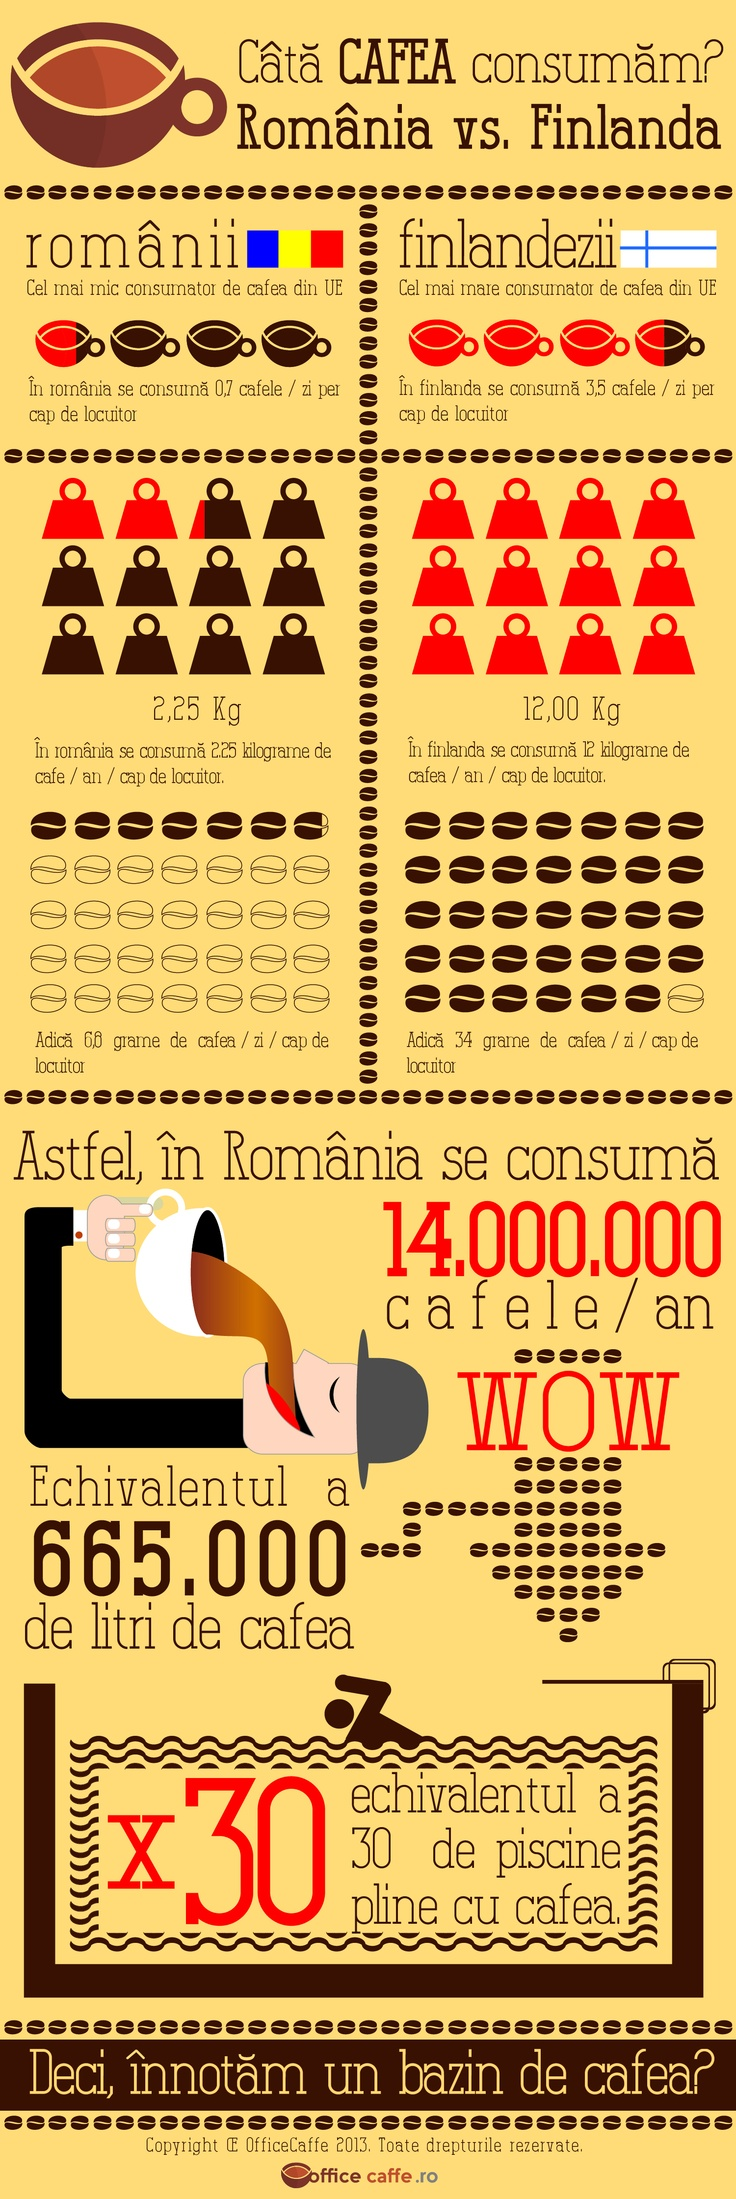 Interesting facts about coffee. Romania vs Finland. Copyright © OfficeCaffe 2013. All rights reserved.